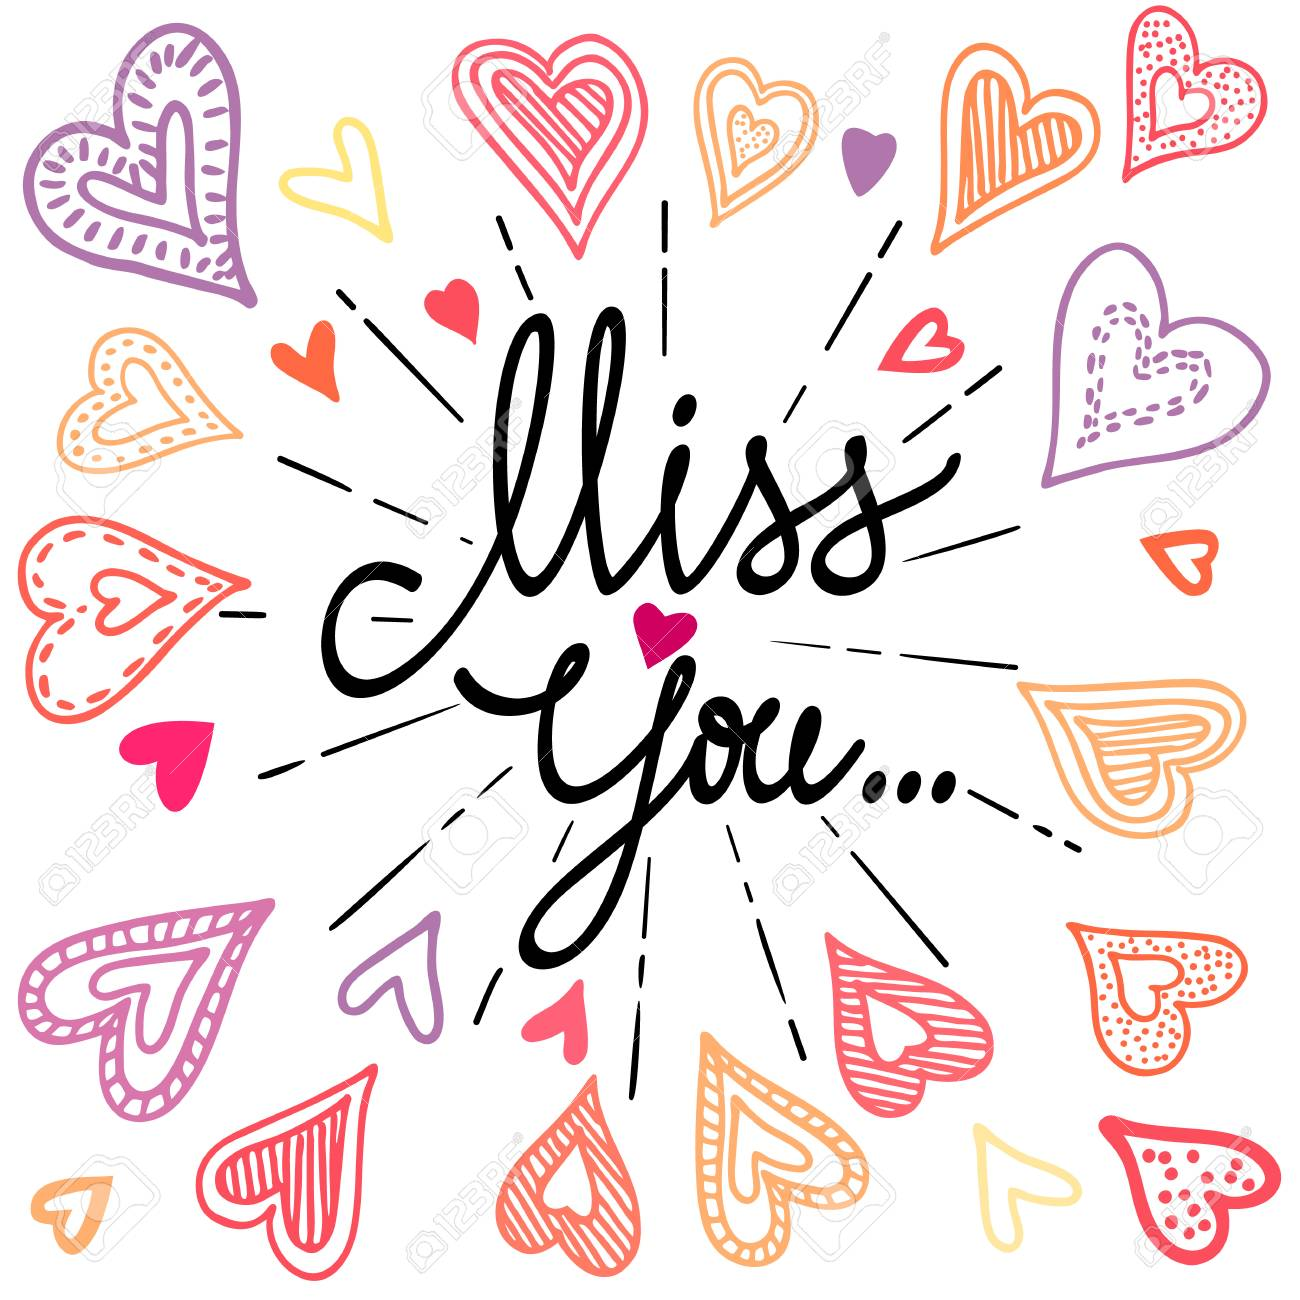 Vintage Greeting Card With Colorful Doodle Hearts Miss You With